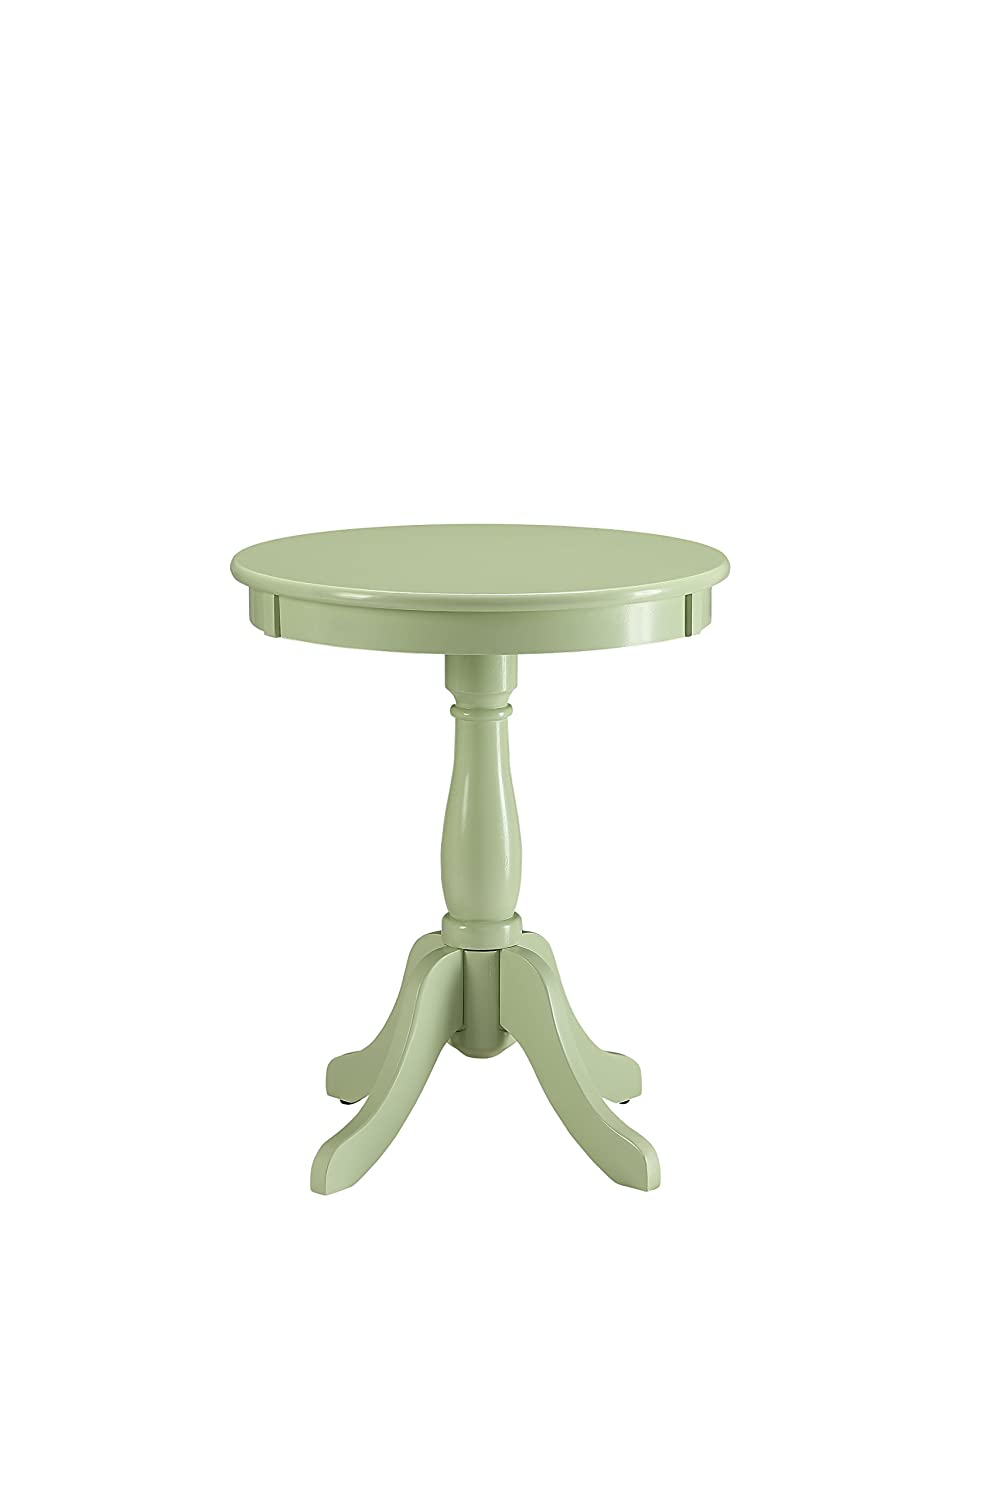 Acme Furniture 82810 Alger Side Table, Light Green, One Size